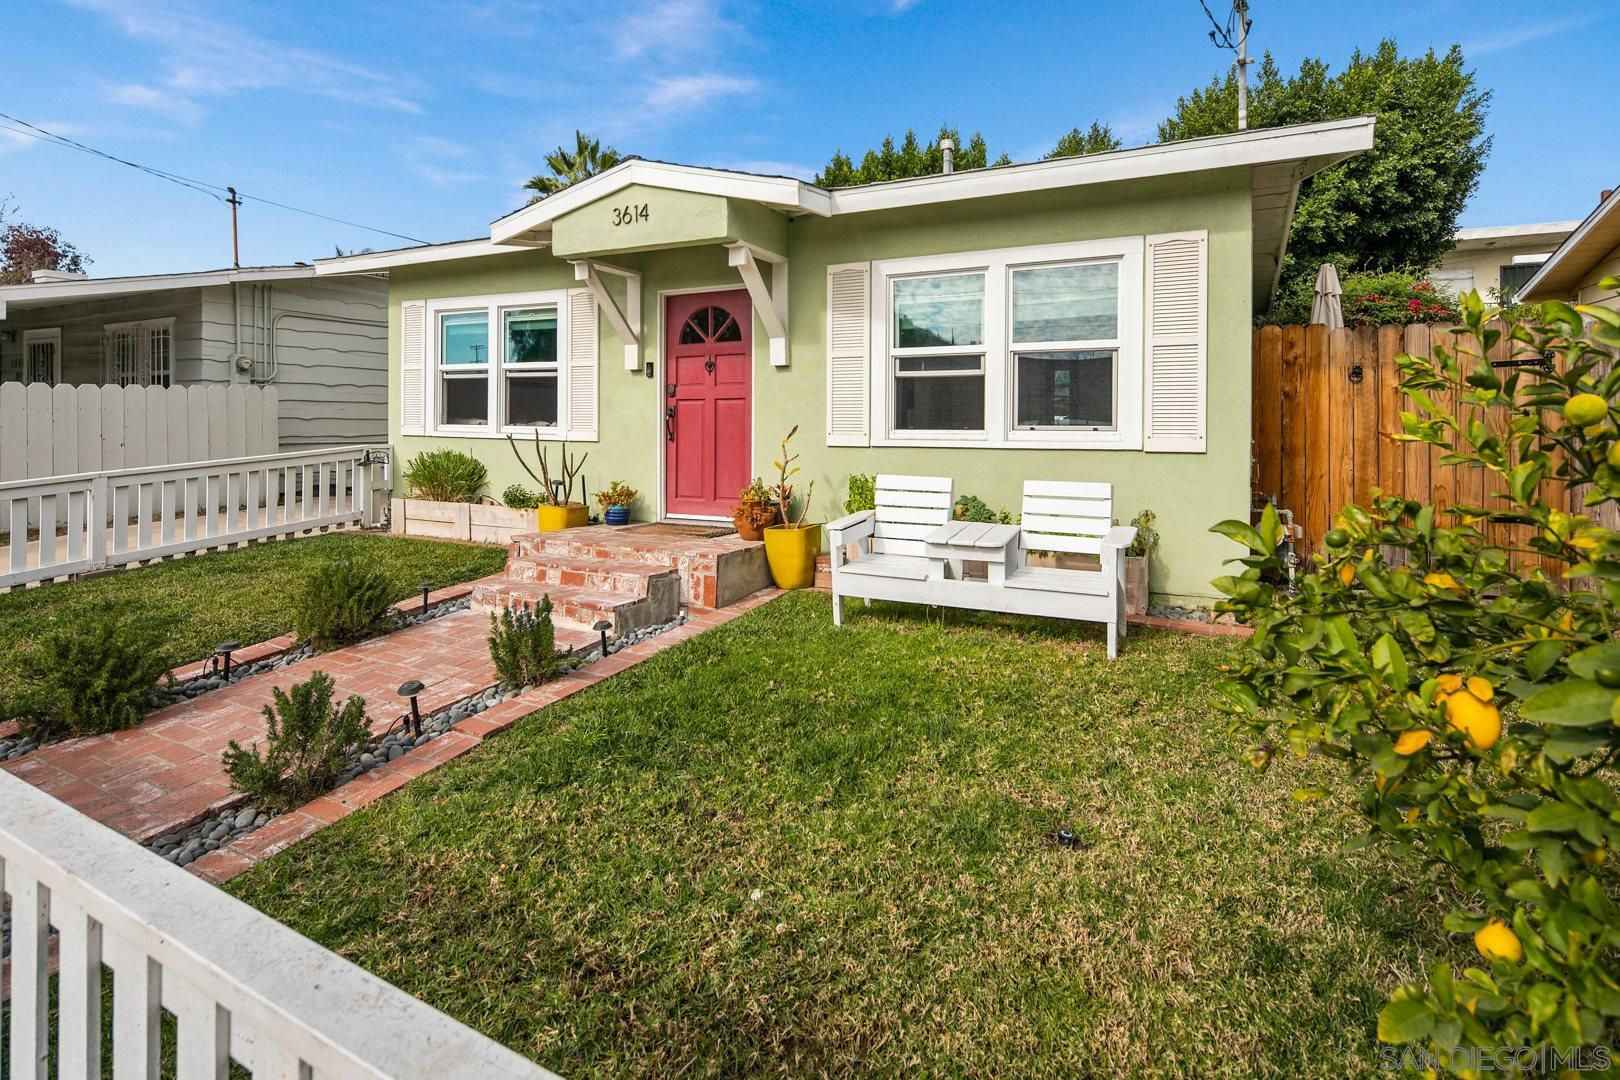 Main Photo: NORMAL HEIGHTS House for sale : 2 bedrooms : 3614 Monroe Ave in San Diego